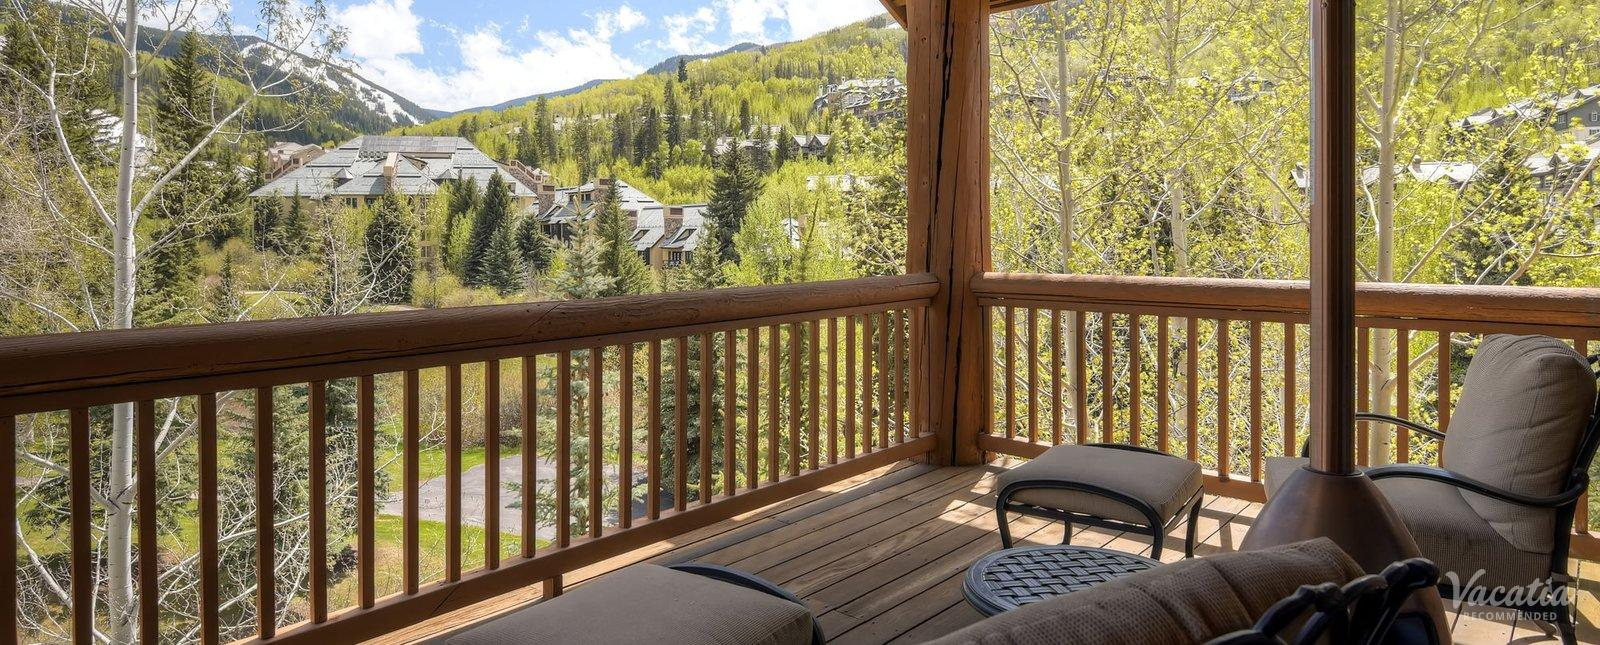 Elkhorn Lodge Beaver Creek Vacatia